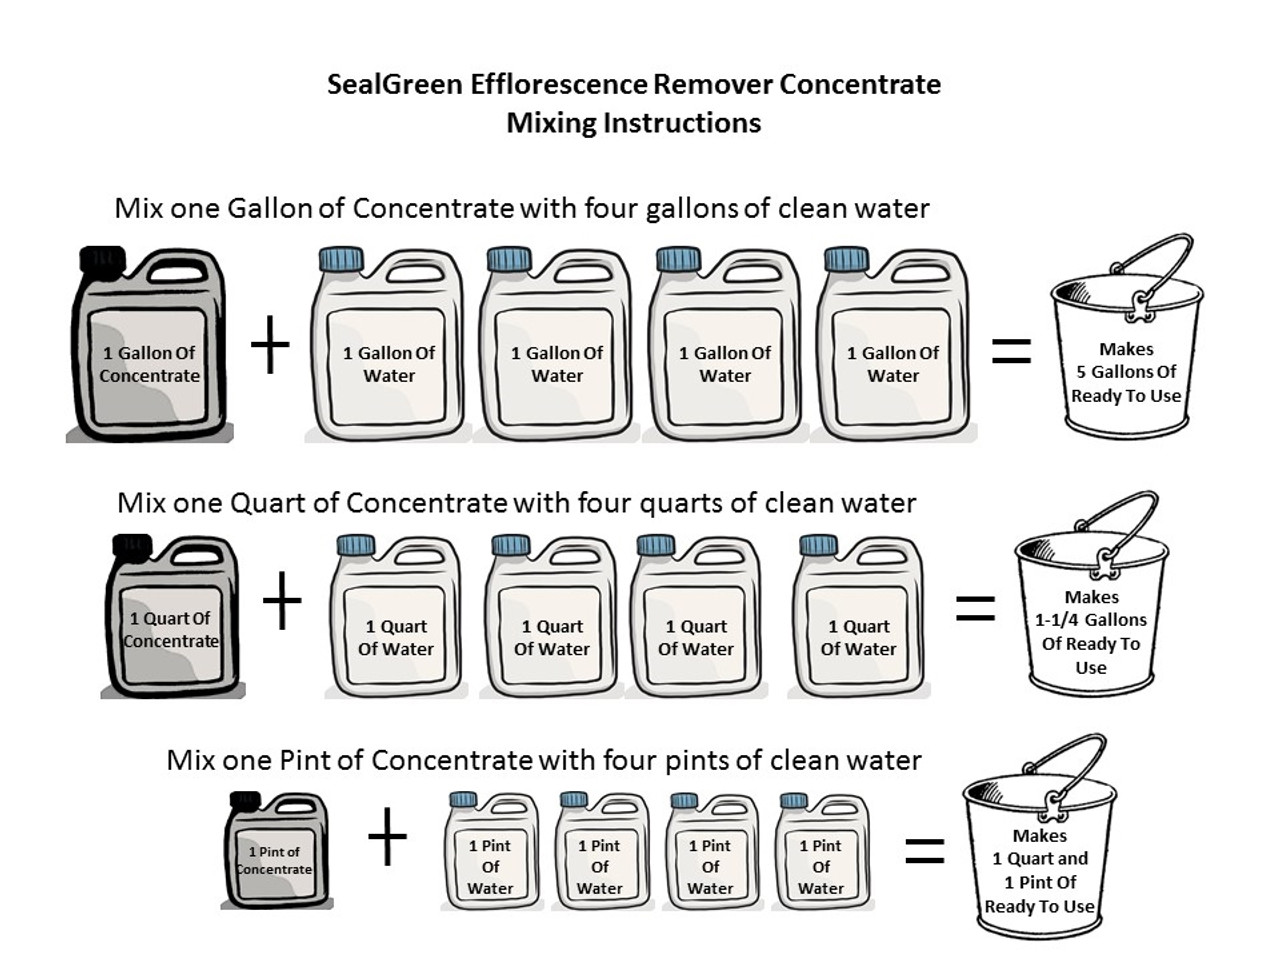 SealGreen Efflorescence Concentrate Mixing instructions